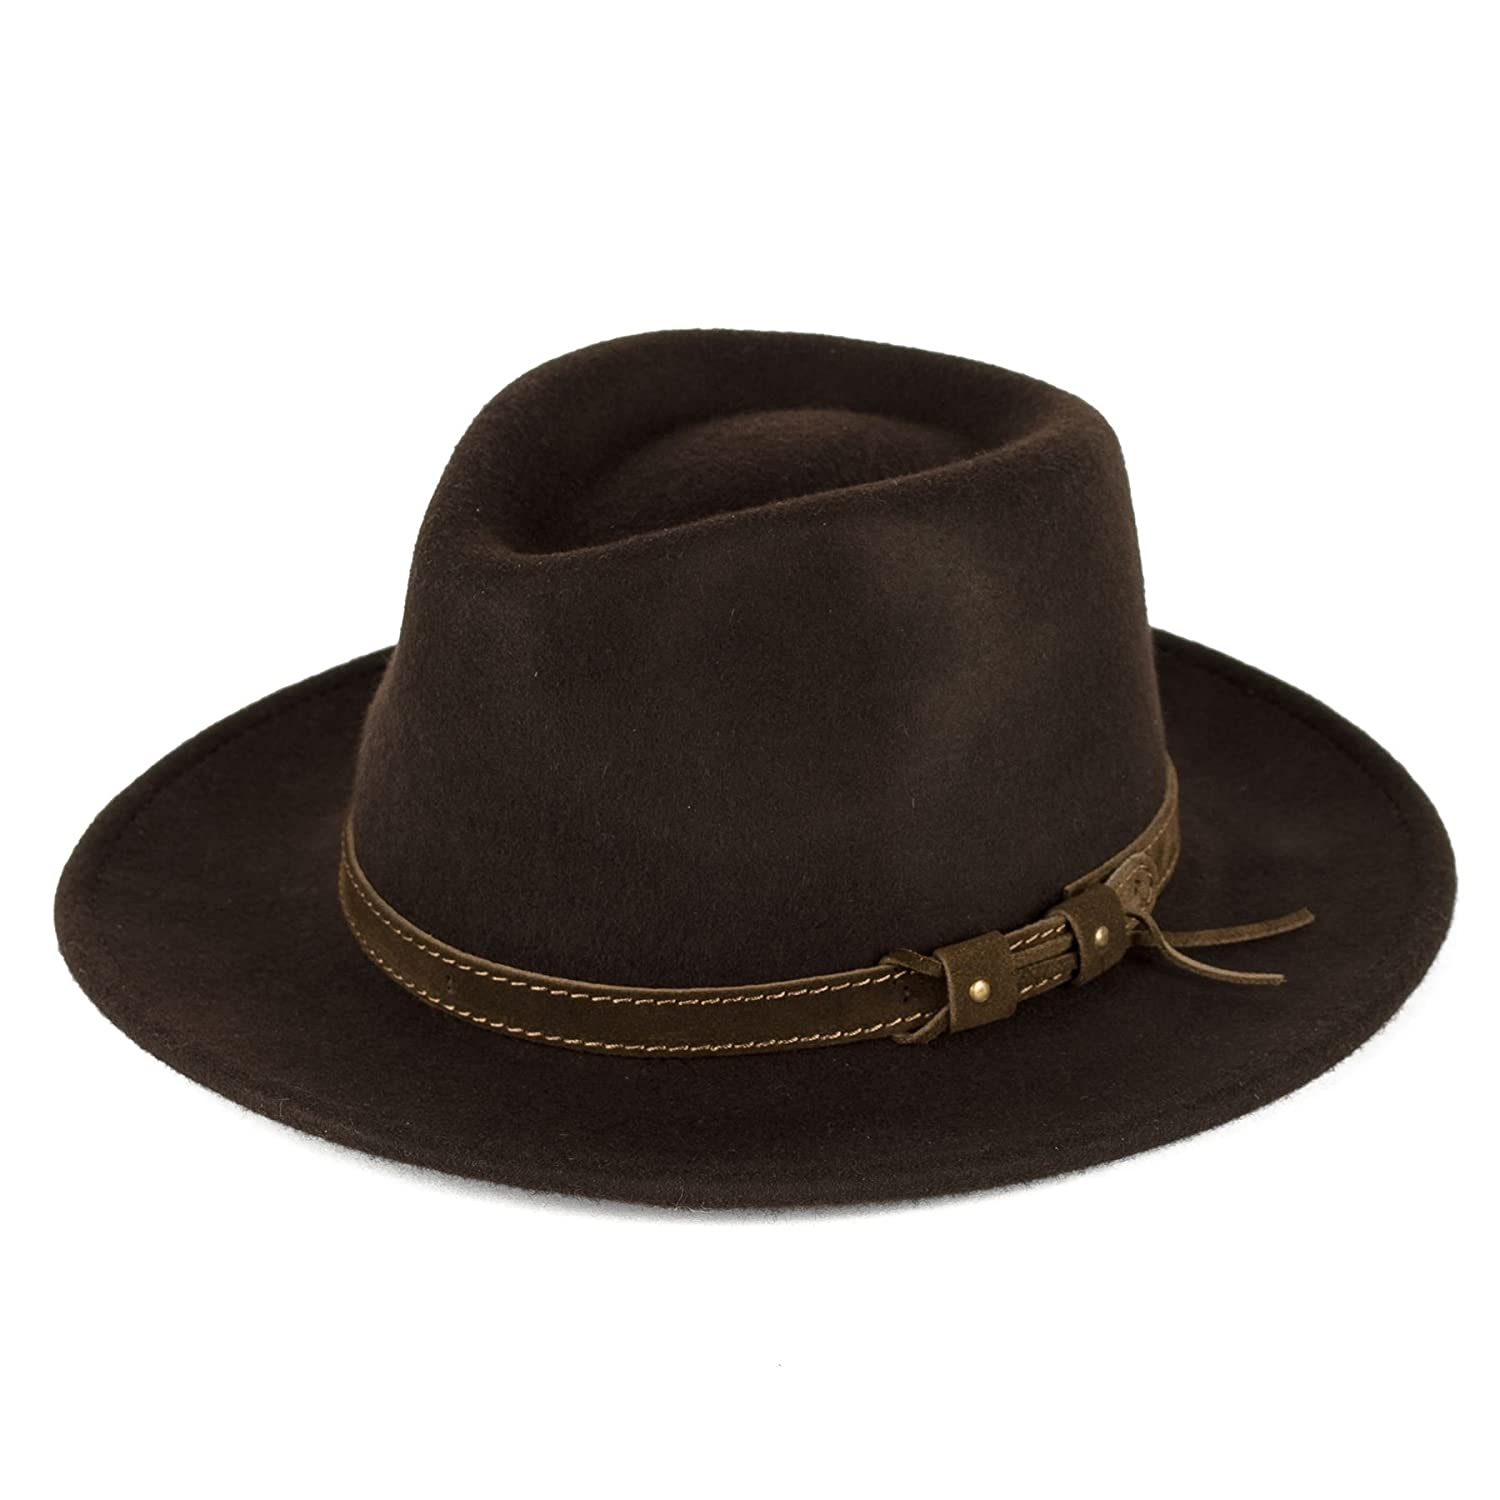 Men's Ladies Fedora Hat 100% Wool Felt Made In Italy Waterproof & Crushable d2d Hats d2d 8140